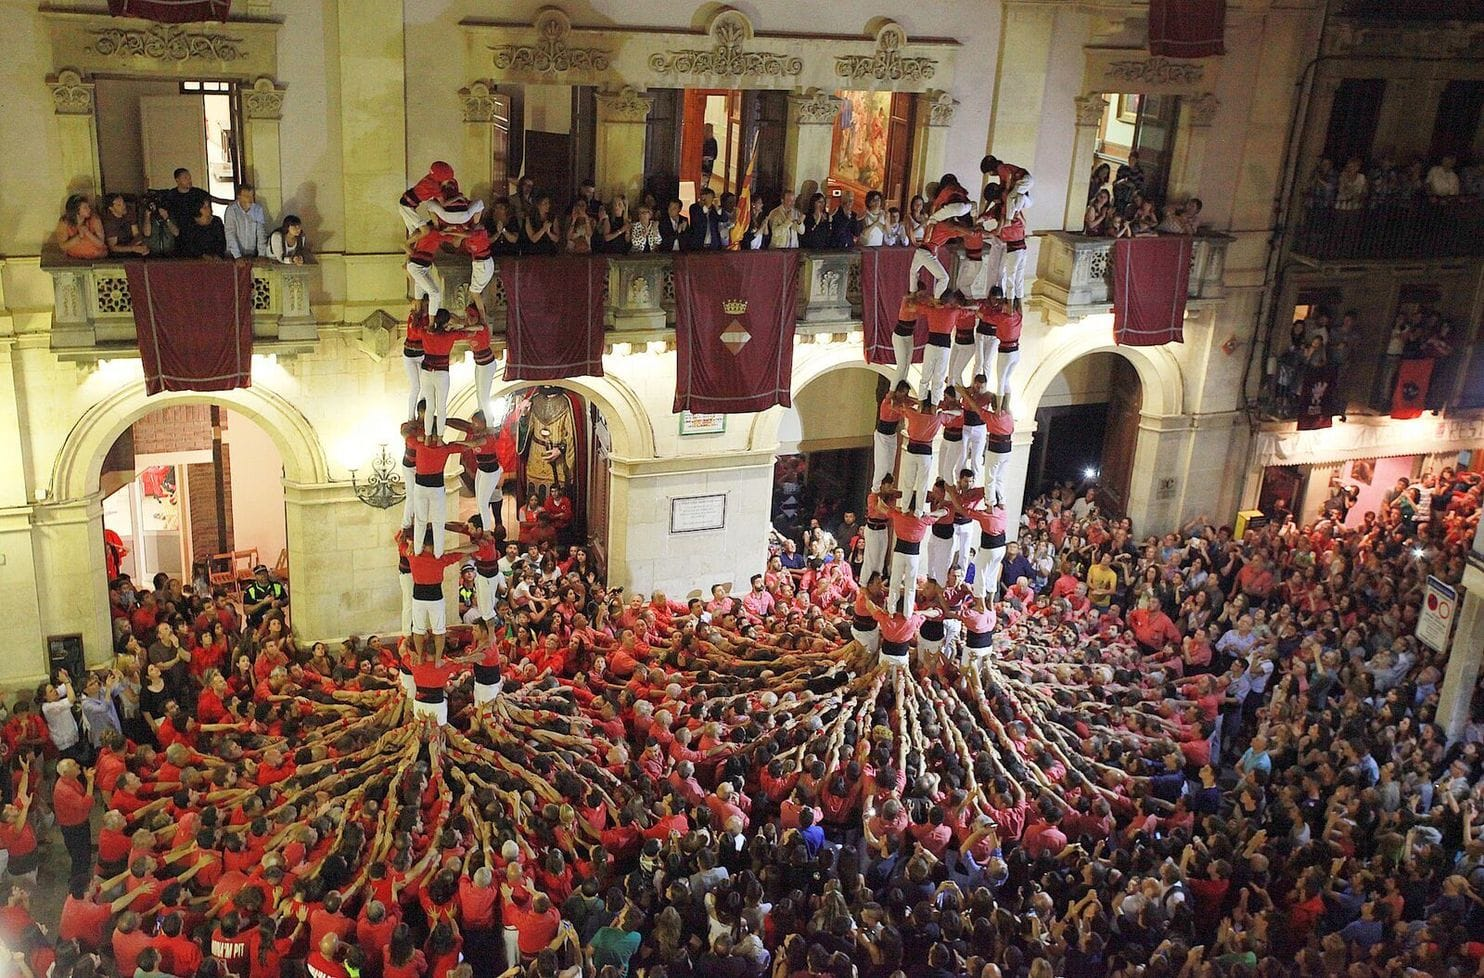 Catalonia's human towers to pop up on the Mall